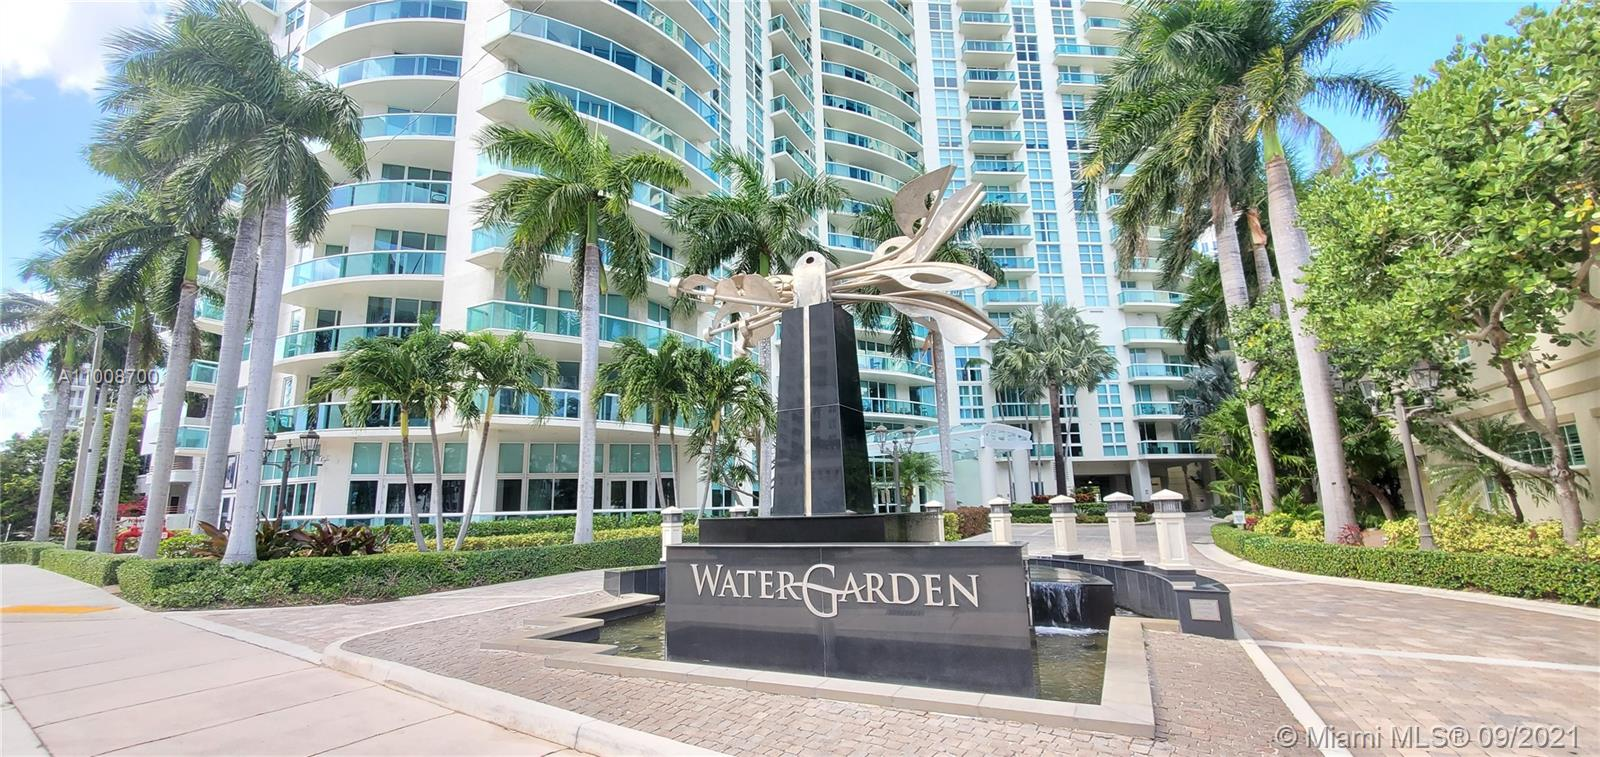 """Watergarden Condominium. Rare """"03 Line"""" . Unique opportunity!!! Unobstructed eye level Southeast view to the Fort Lauderdale New River. 2/2 Corner unit. Open and spacious floor plan. Large panoramic balcony. Just steps to Las Olas Blvd. Minutes away to the Fort Lauderdale beach and FLL International Airport. Building offer great ammenities such as : Gym, Pool, Library, spa, theatre, 24 concierge, valet parking and more."""